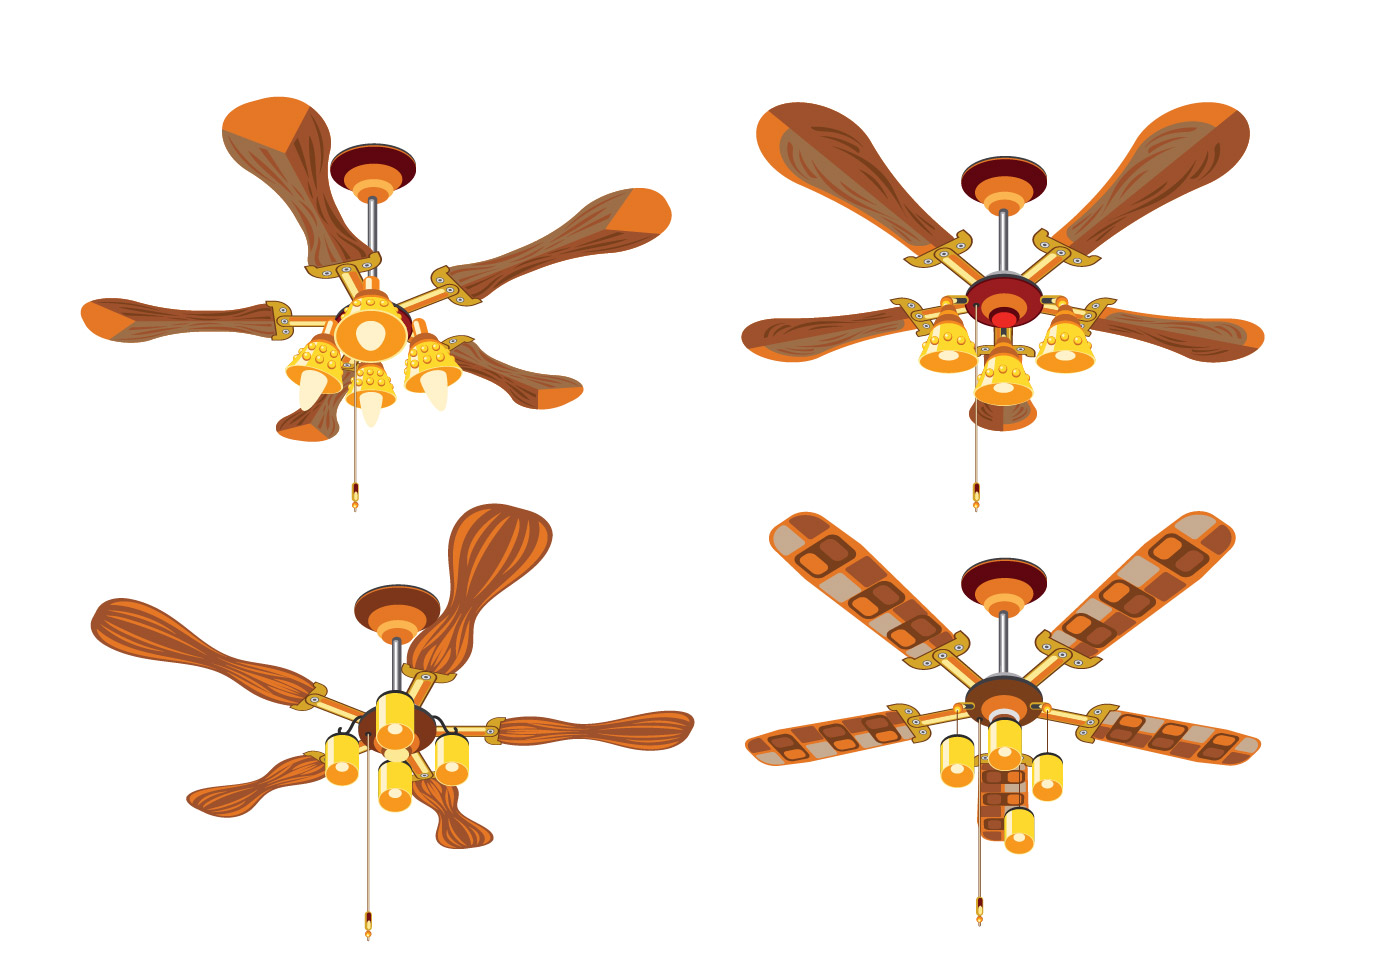 Close Up Set Of Vintage Ceiling Fan With Light